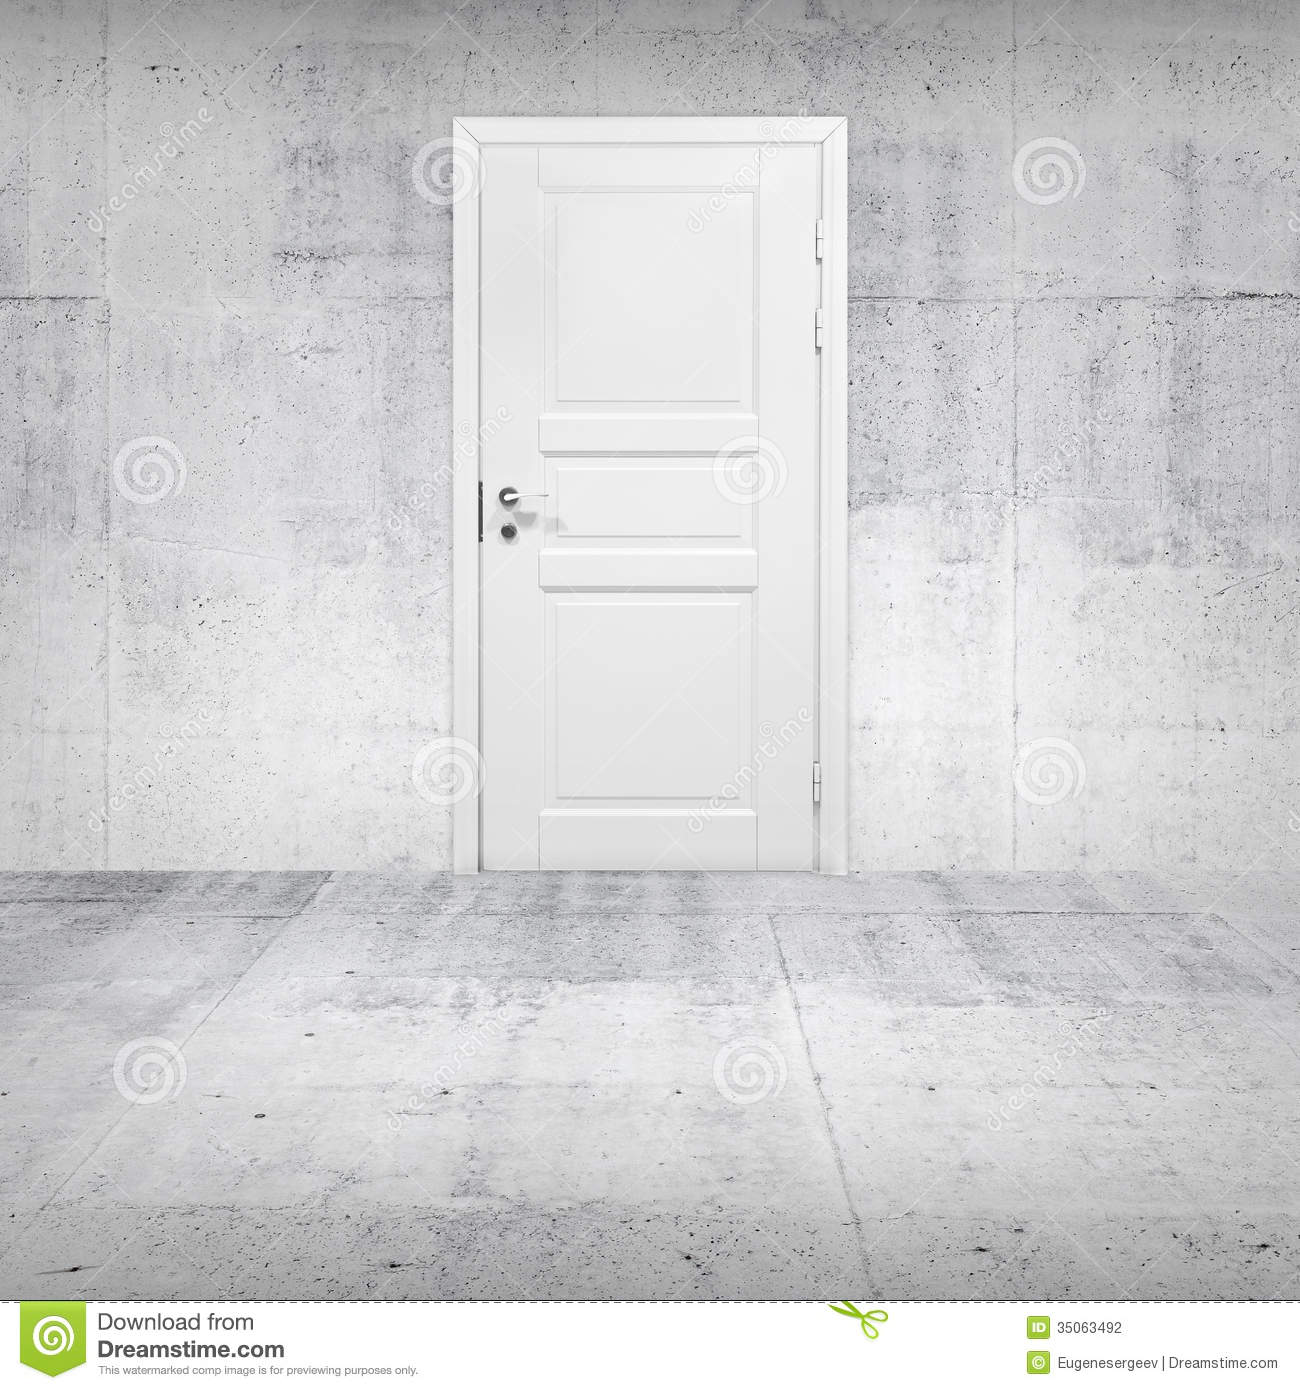 Royalty Free Stock Images Silhouette Man Hammer Nail Renovation Image30427969 further Stock Photography Abstract Empty White Interior Concrete Wall Closed Door Image35063492 additionally Thing further 2405 Photodune Double Blank Road Sign 1328595 besides Empty Living Room With Large Windows Can Be As Background Image 2954554. on empty house interior design